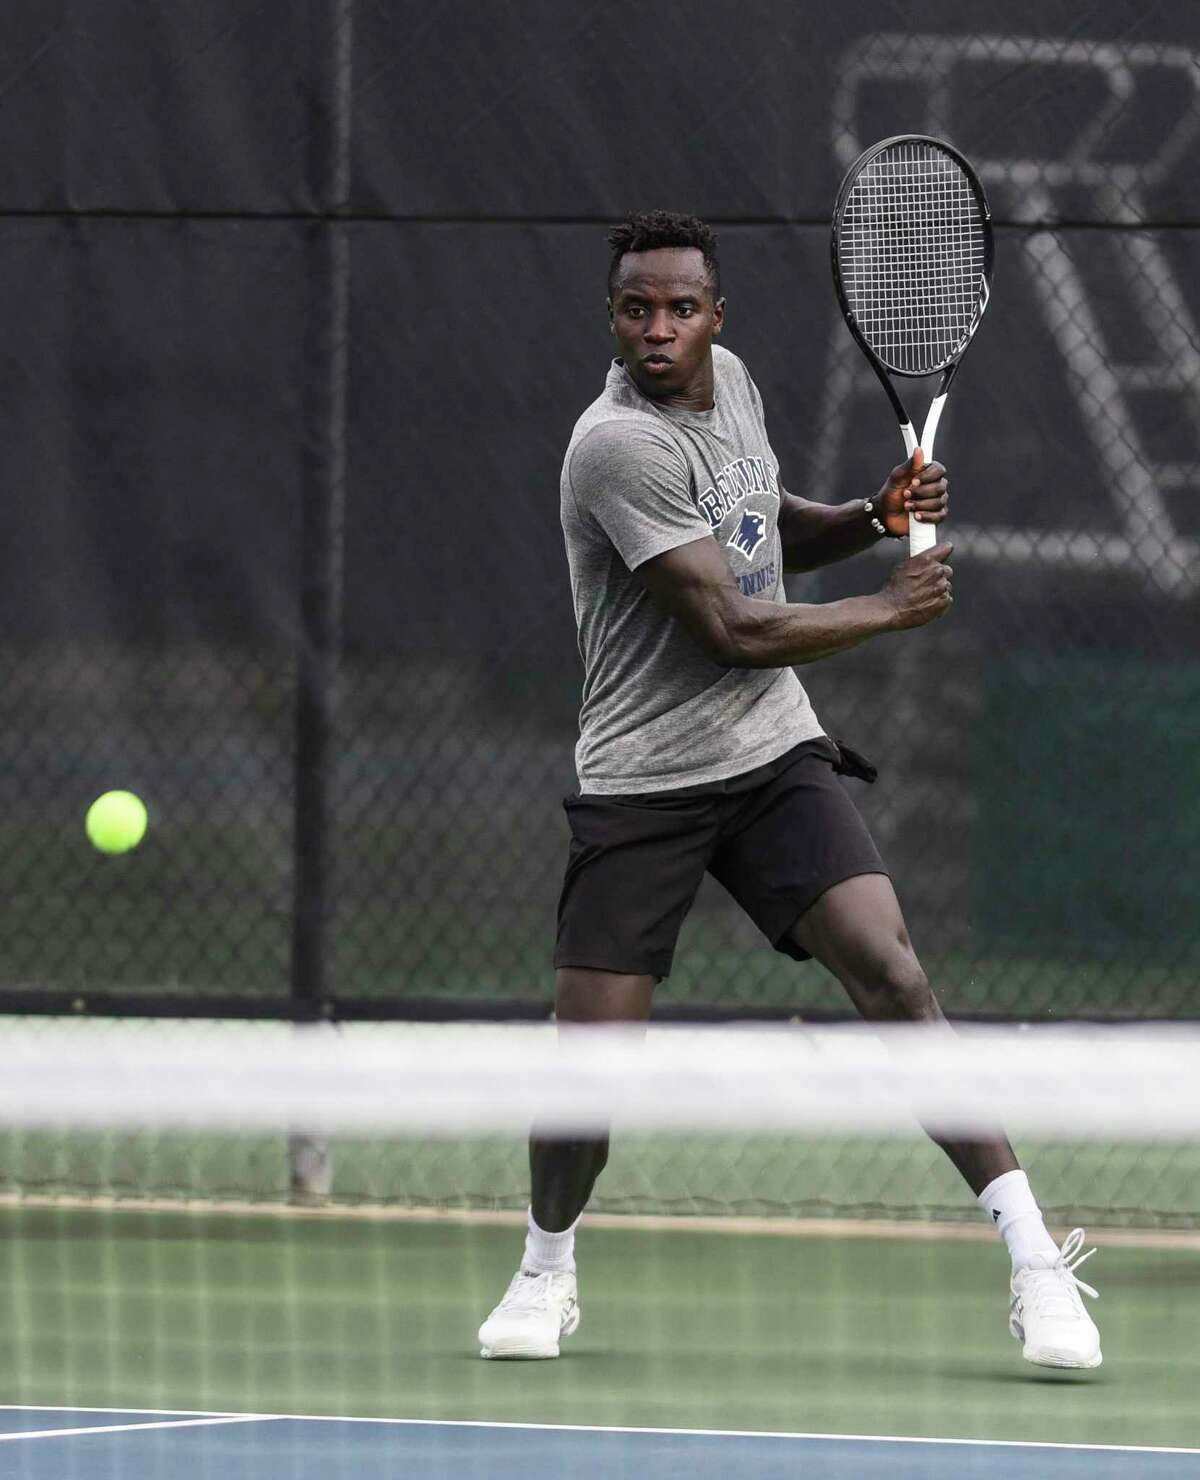 Jonah Wafula returns on serve during the Southeast Texas Tennis Association 100th annual Labor Day tournament at the Beaumont Tennis Center on Friday. Photo taken on Friday, 08/22/19. Ryan Welch/The Enterprise